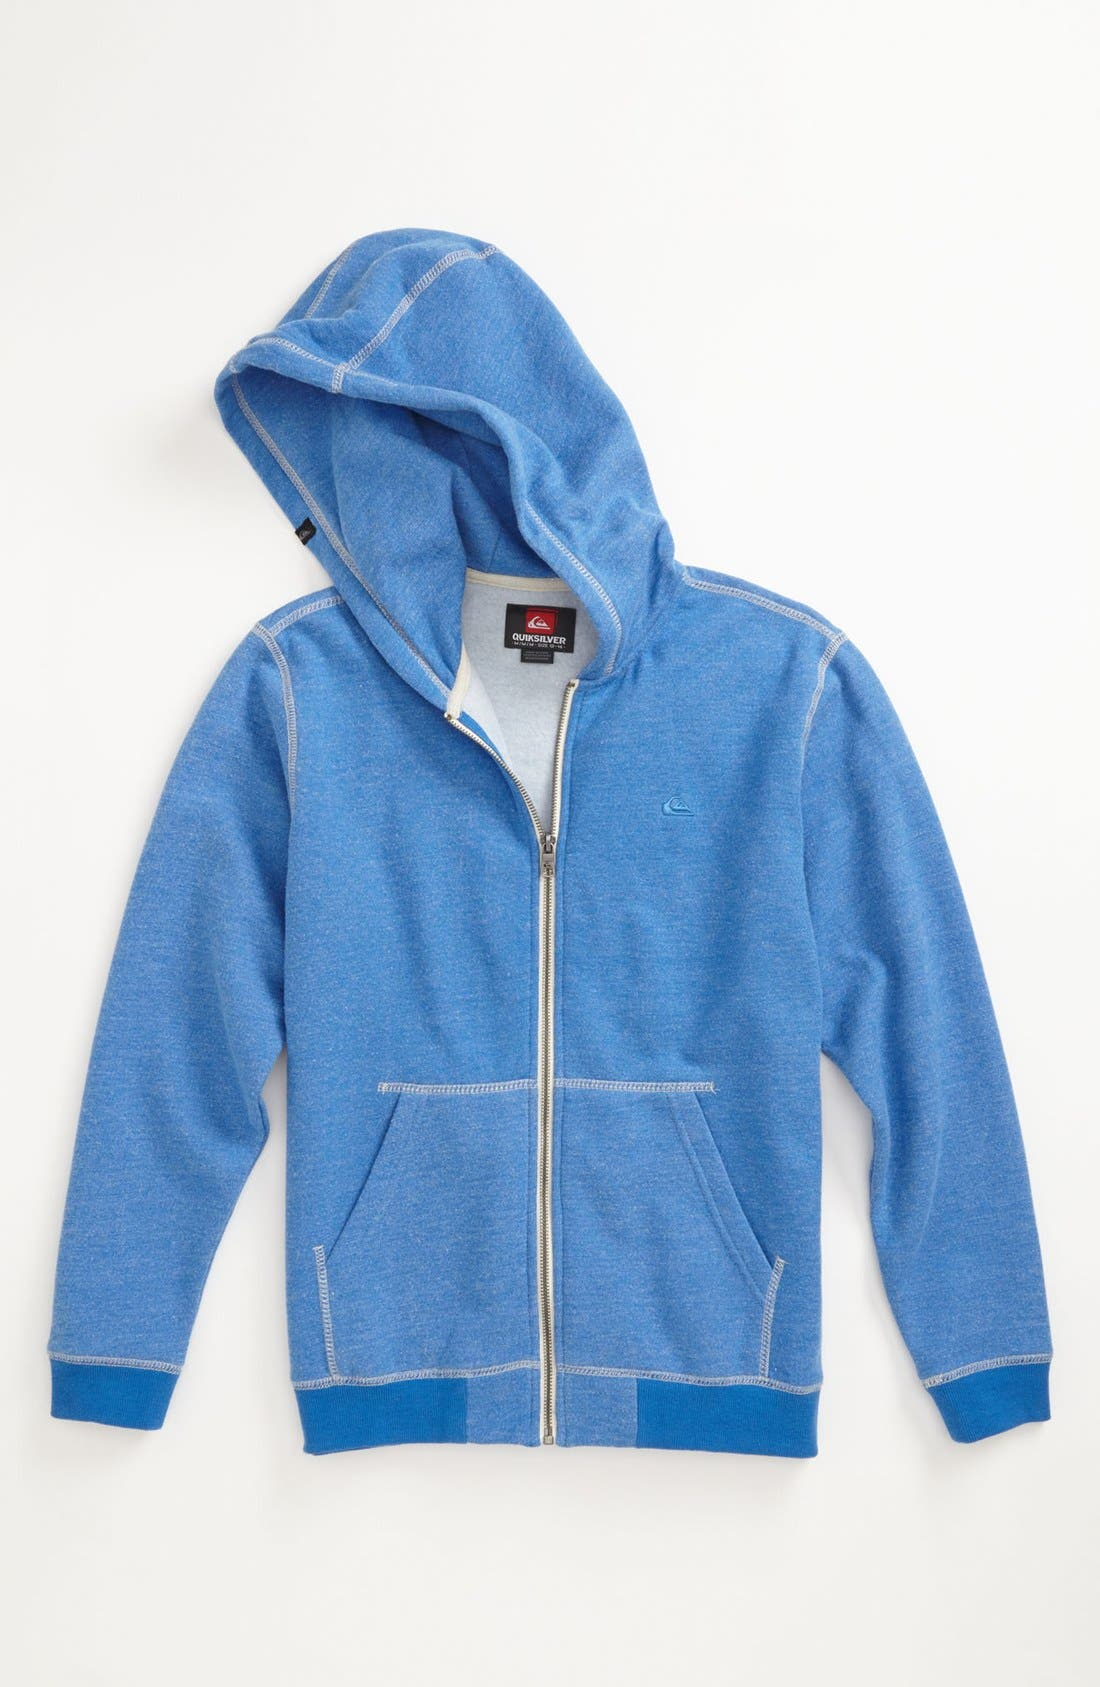 Main Image - Quiksilver 'Hartley' Hoodie (Little Boys) (Online Only)